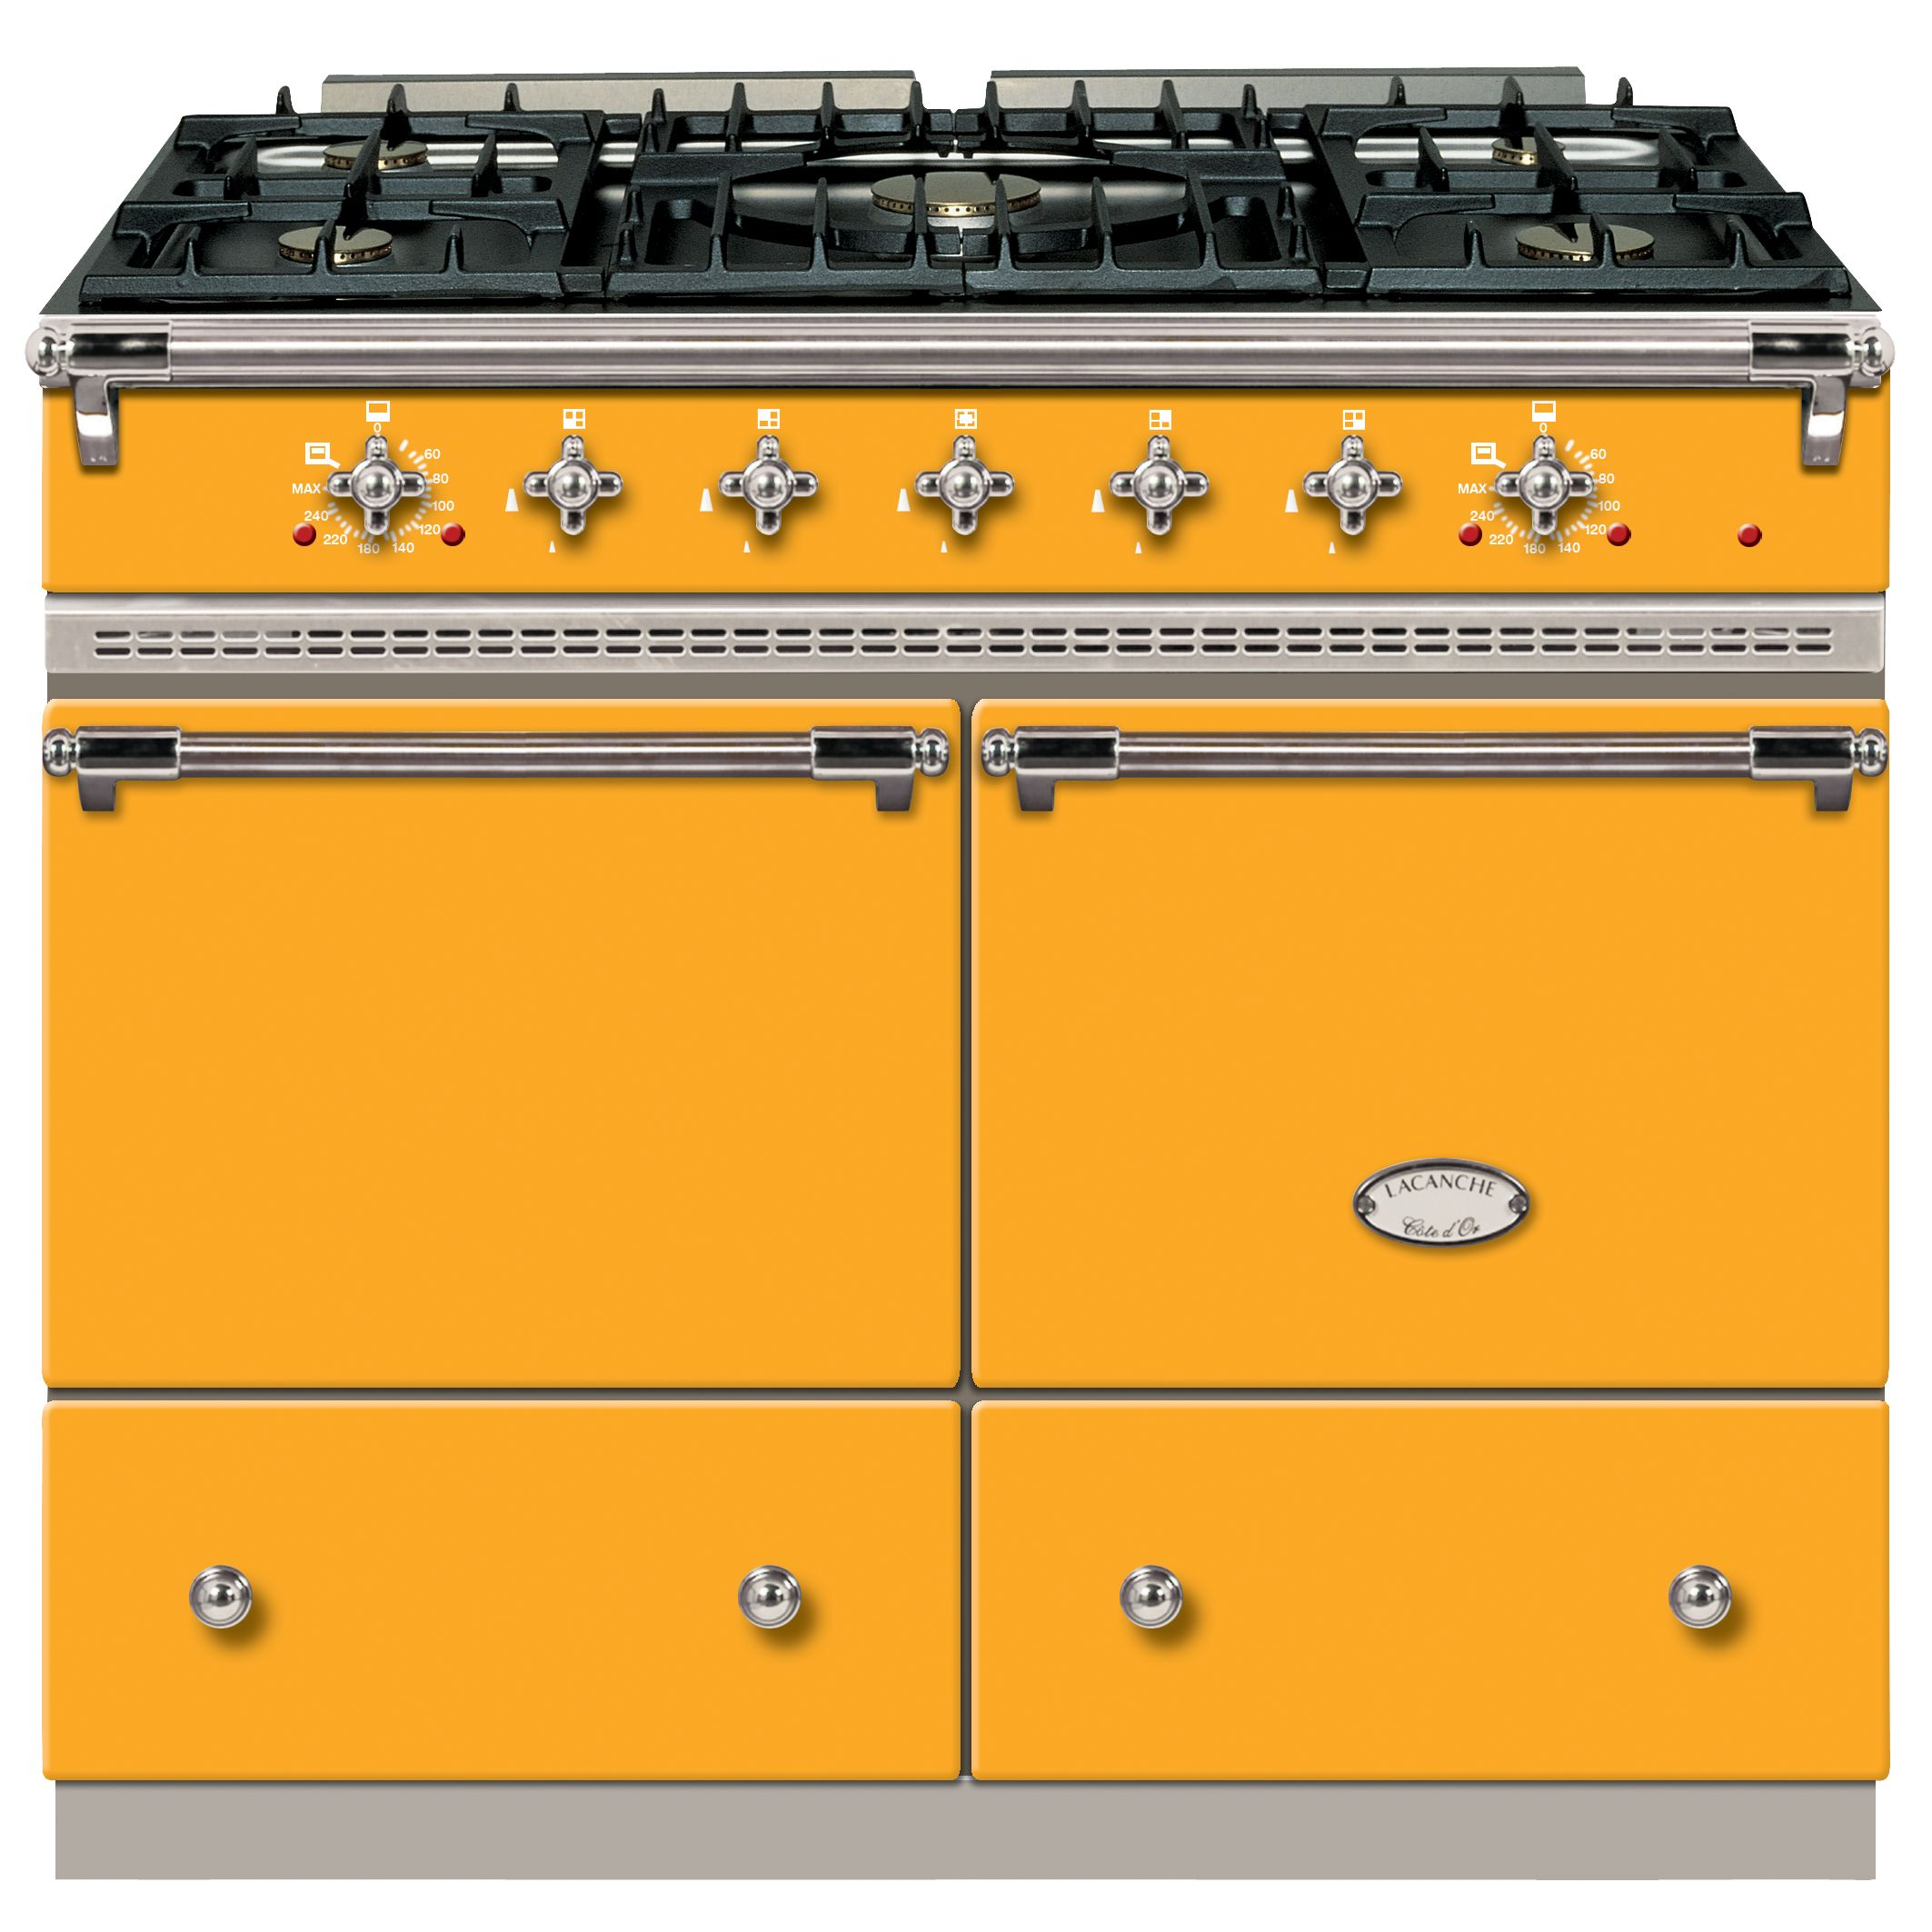 Lacanche Cluny LG1052GCT Dual Fuel Range Cooker, Provence Yellow / Chrome Trim at John Lewis